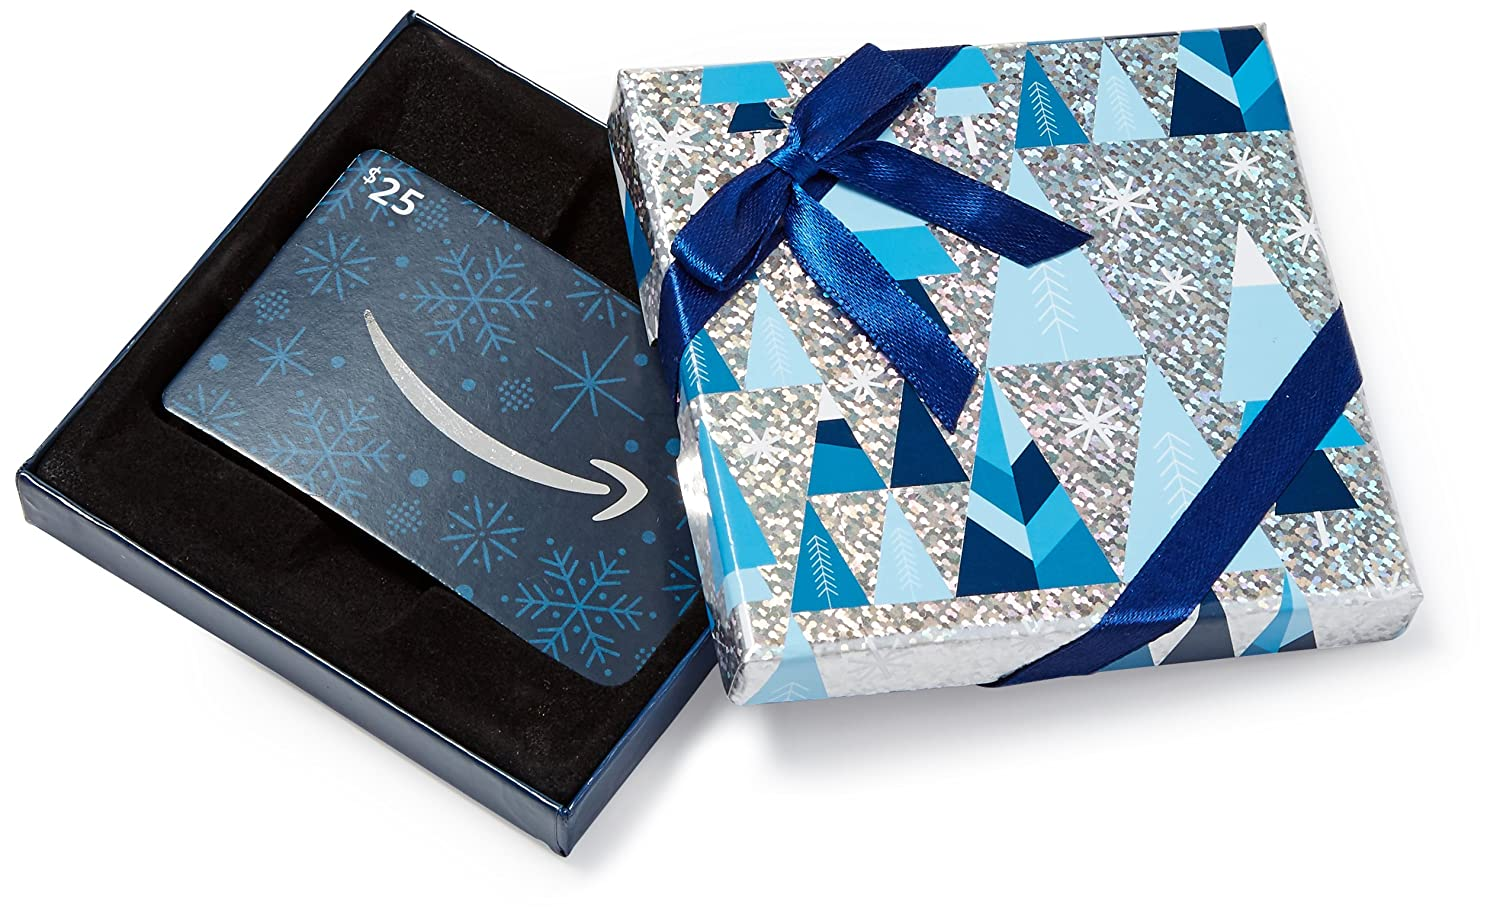 Amazon.com Gift Card in a Blue and Silver Gift Box VariableDenomination